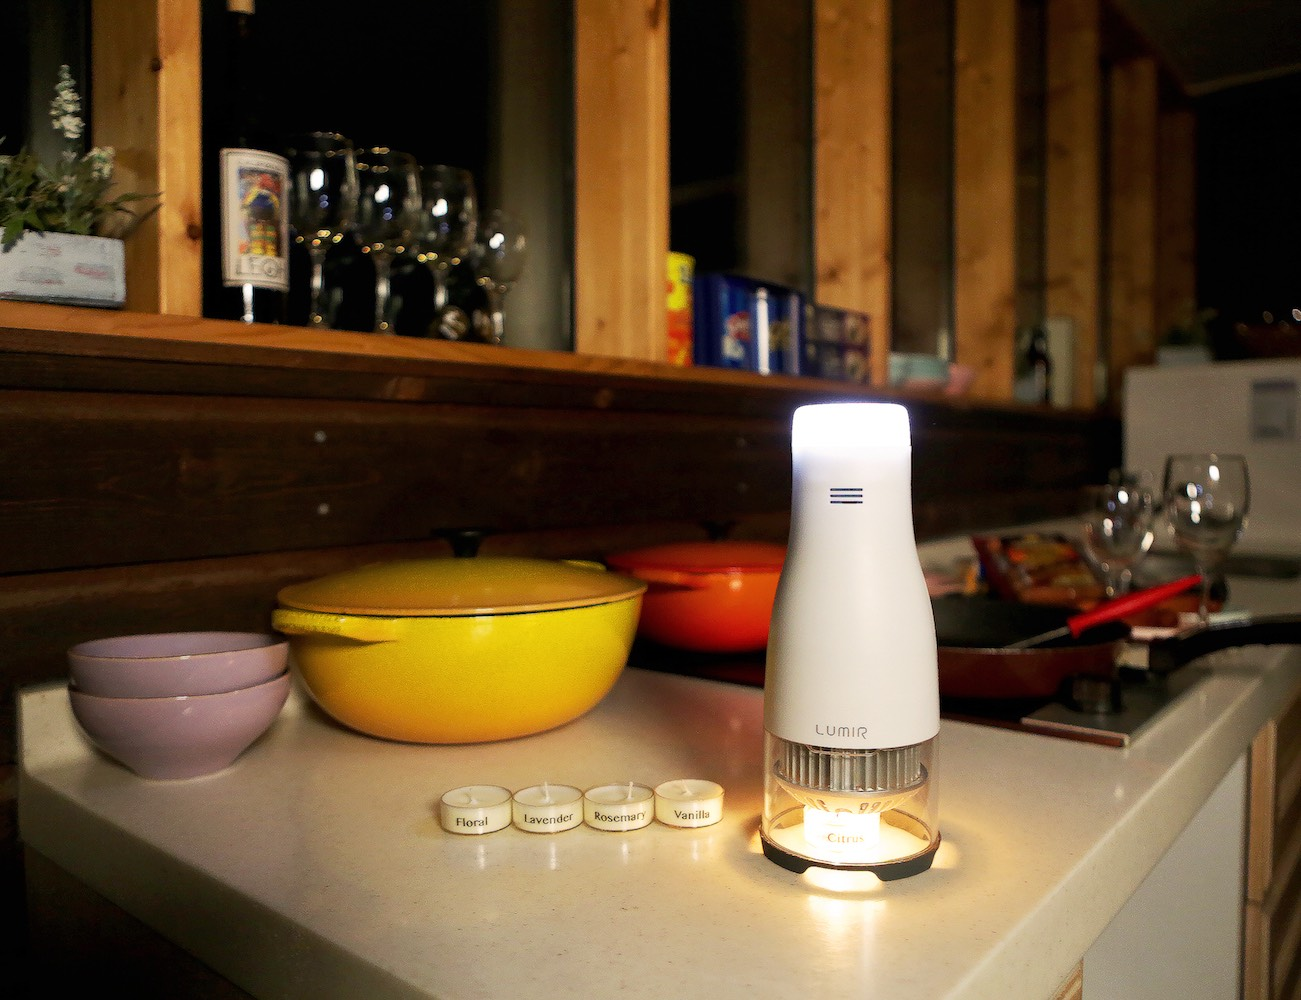 Lumir+C+%E2%80%93+The+Candle+Powered+LED+Lamp